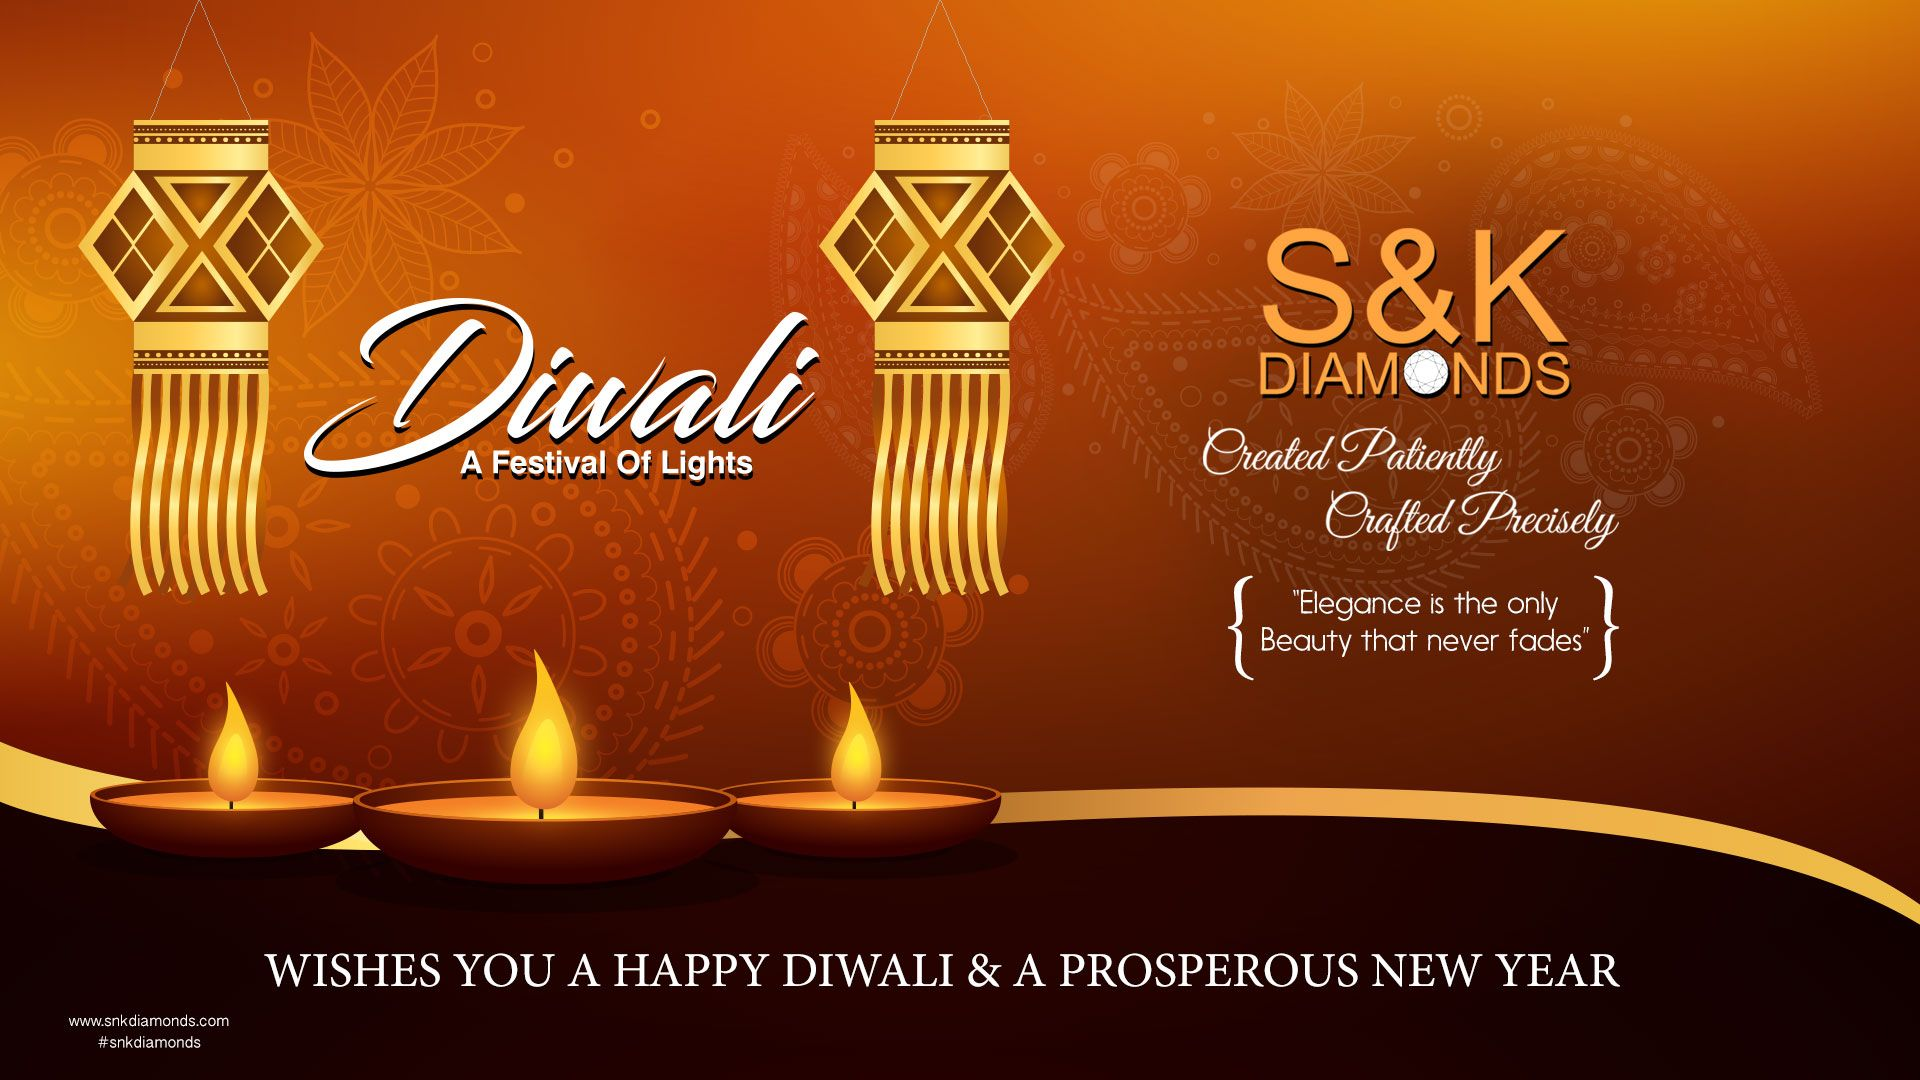 Wishes You A Happy Diwali And A Prosperous New Year To All Our